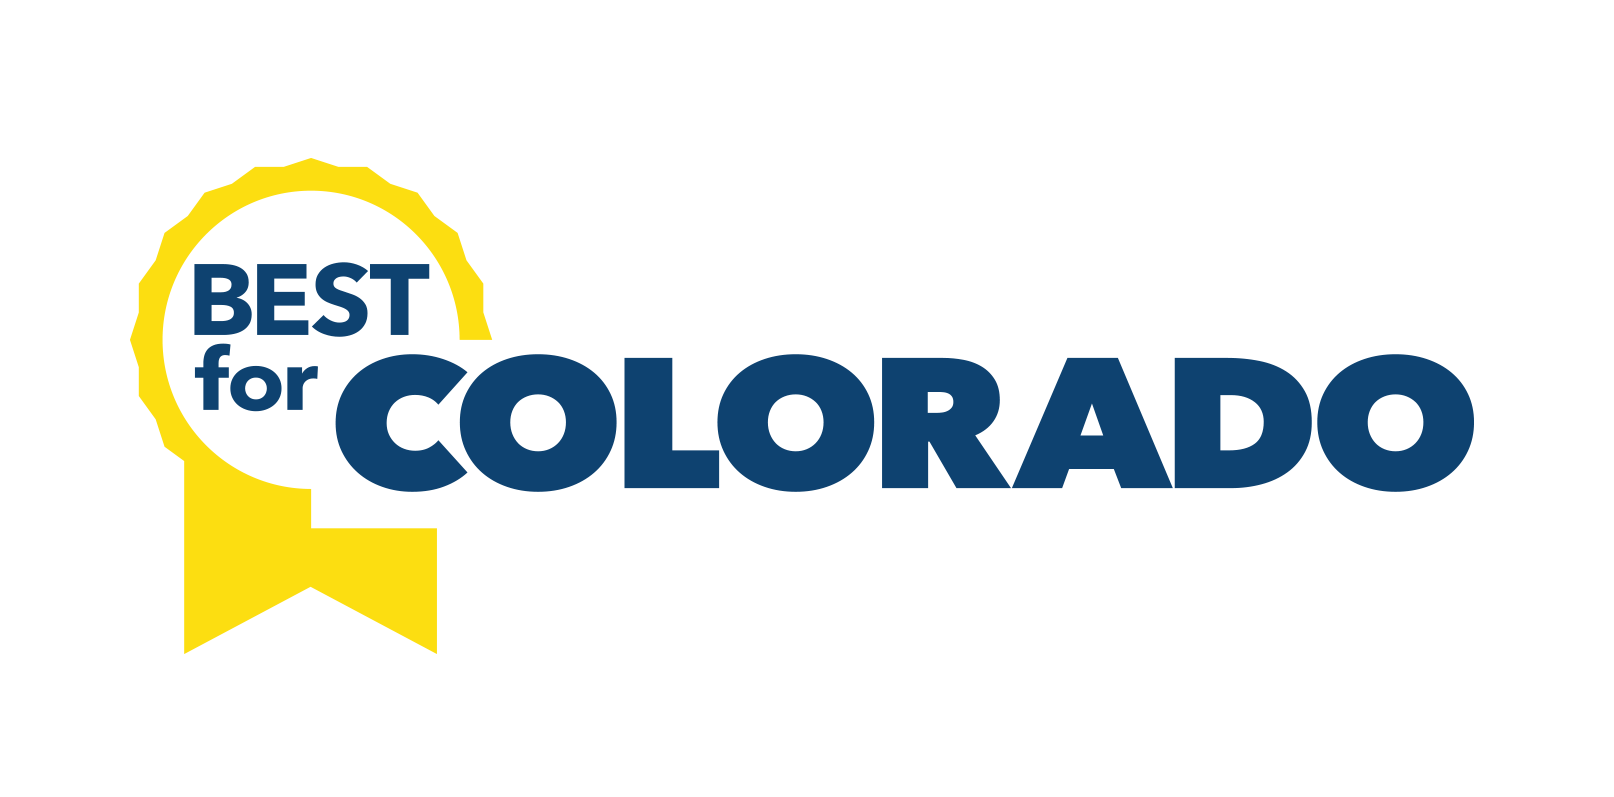 Best-For-Colorado-Logo (1).png Opens in new window